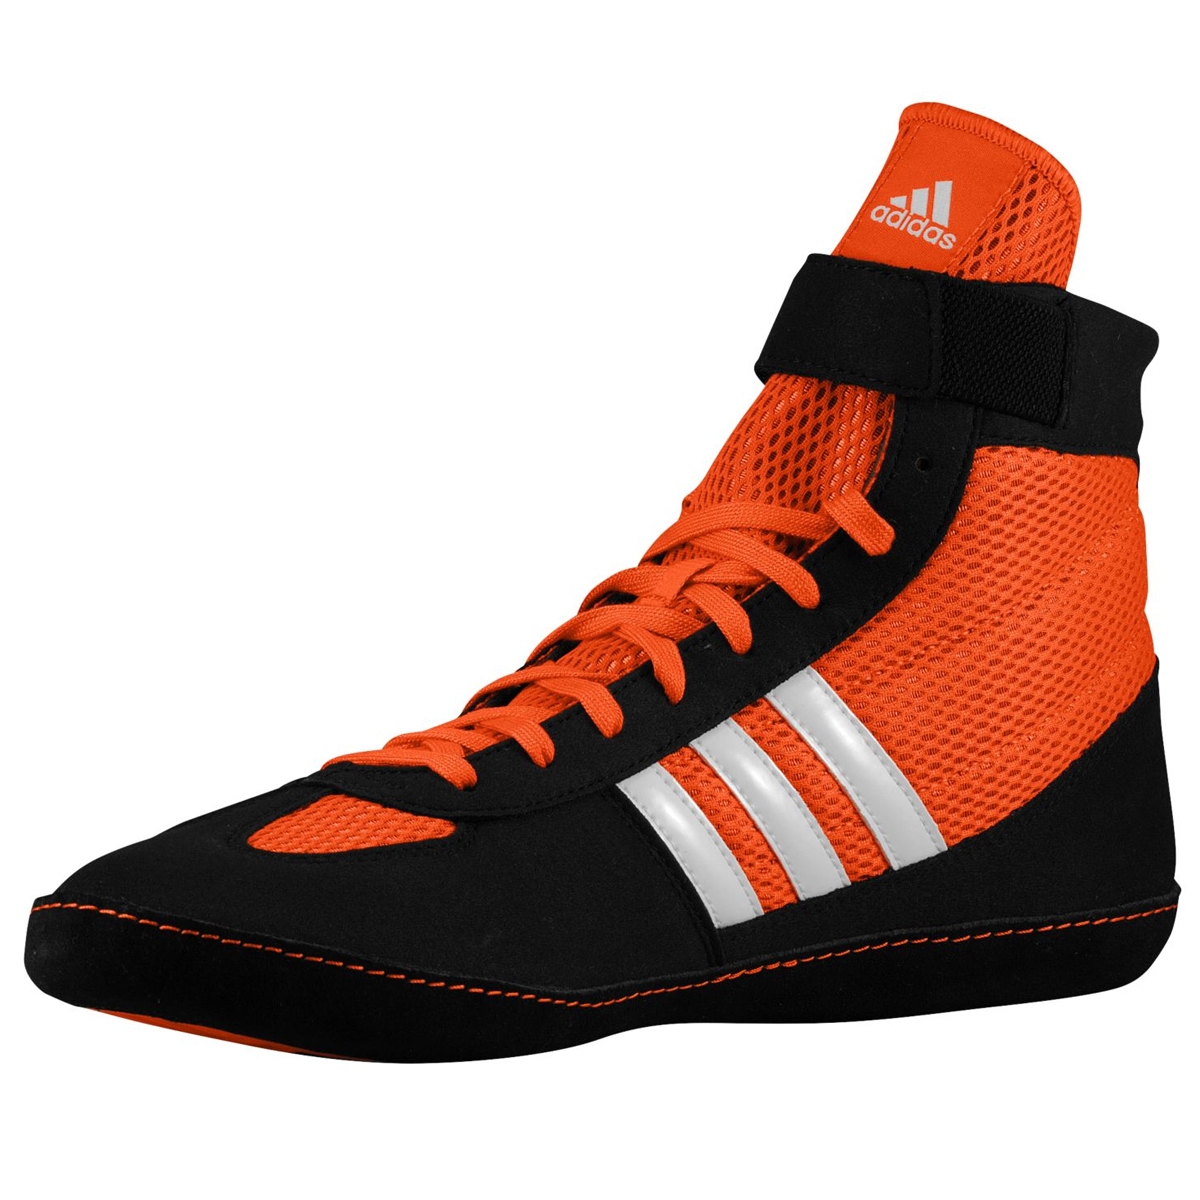 240761020afc7c ... sale coupon for size 4 wrestling shoes. adidas combat speed 4 wrestling  shoes orange white